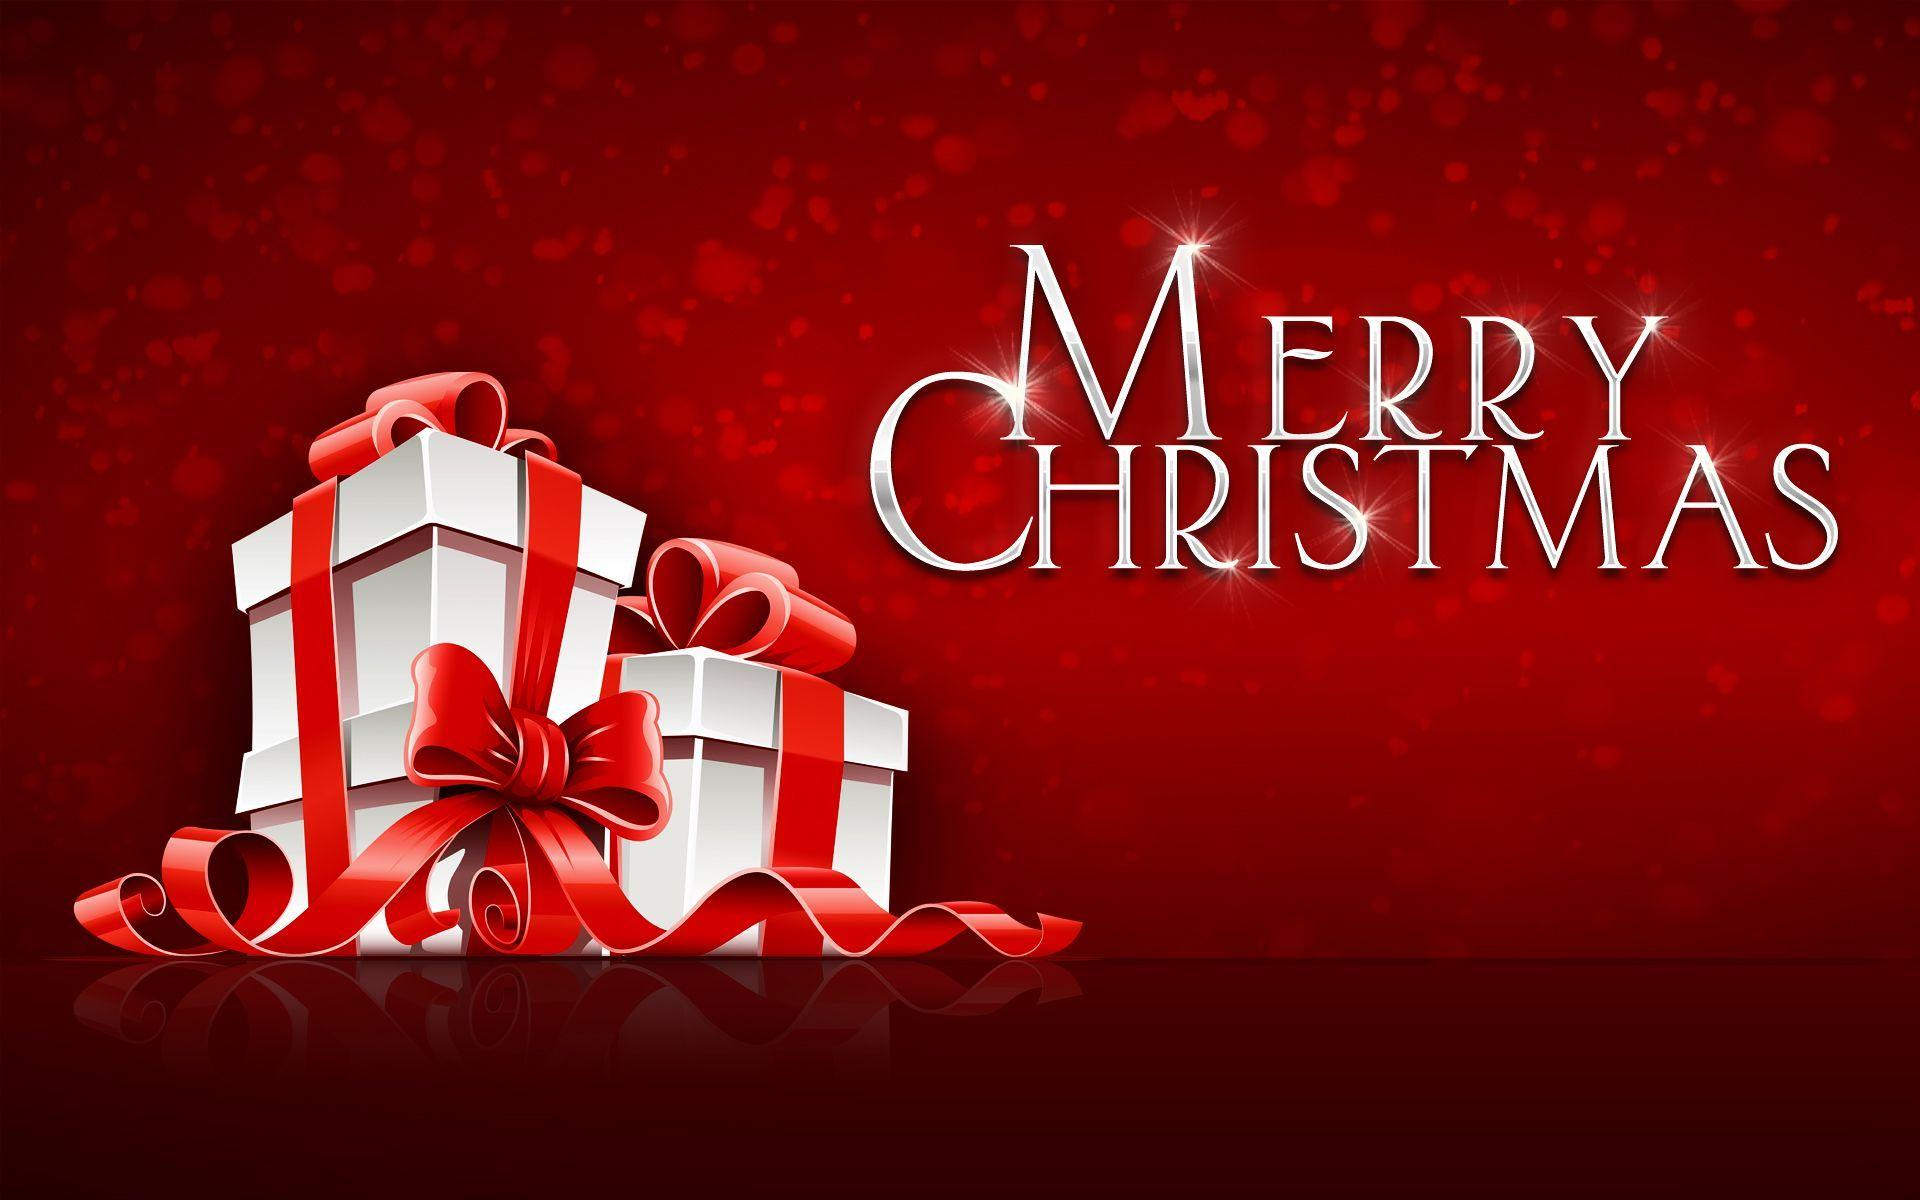 Merry Christmas Wallpapers 2017 Wallpaper Cave